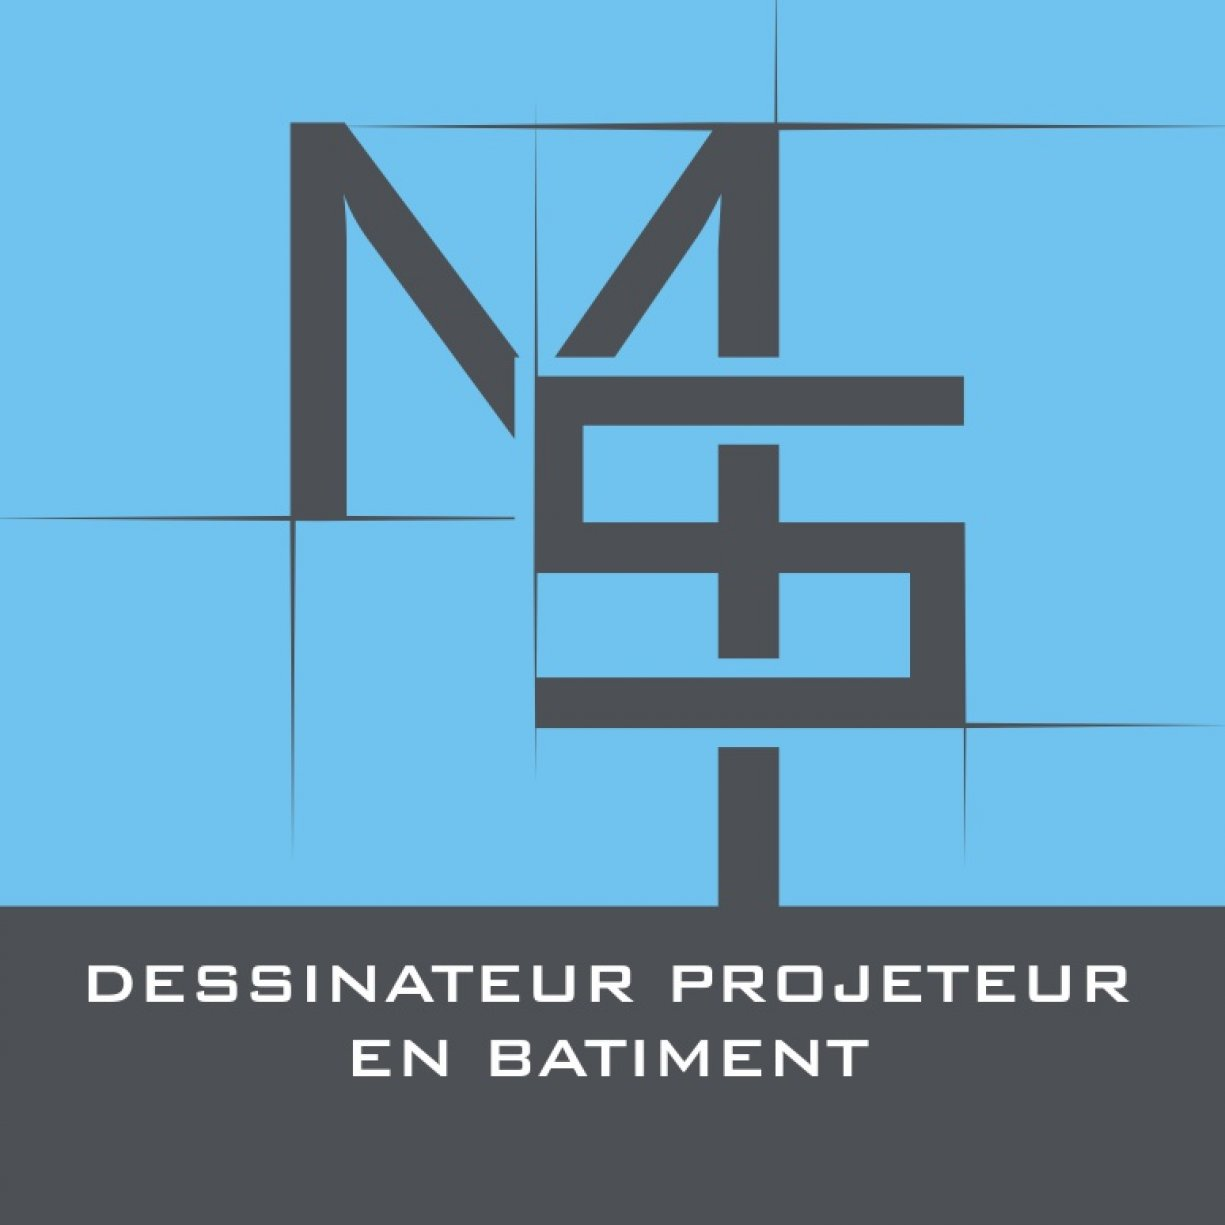 MS Conception Dessinateur Projeteur en batiment